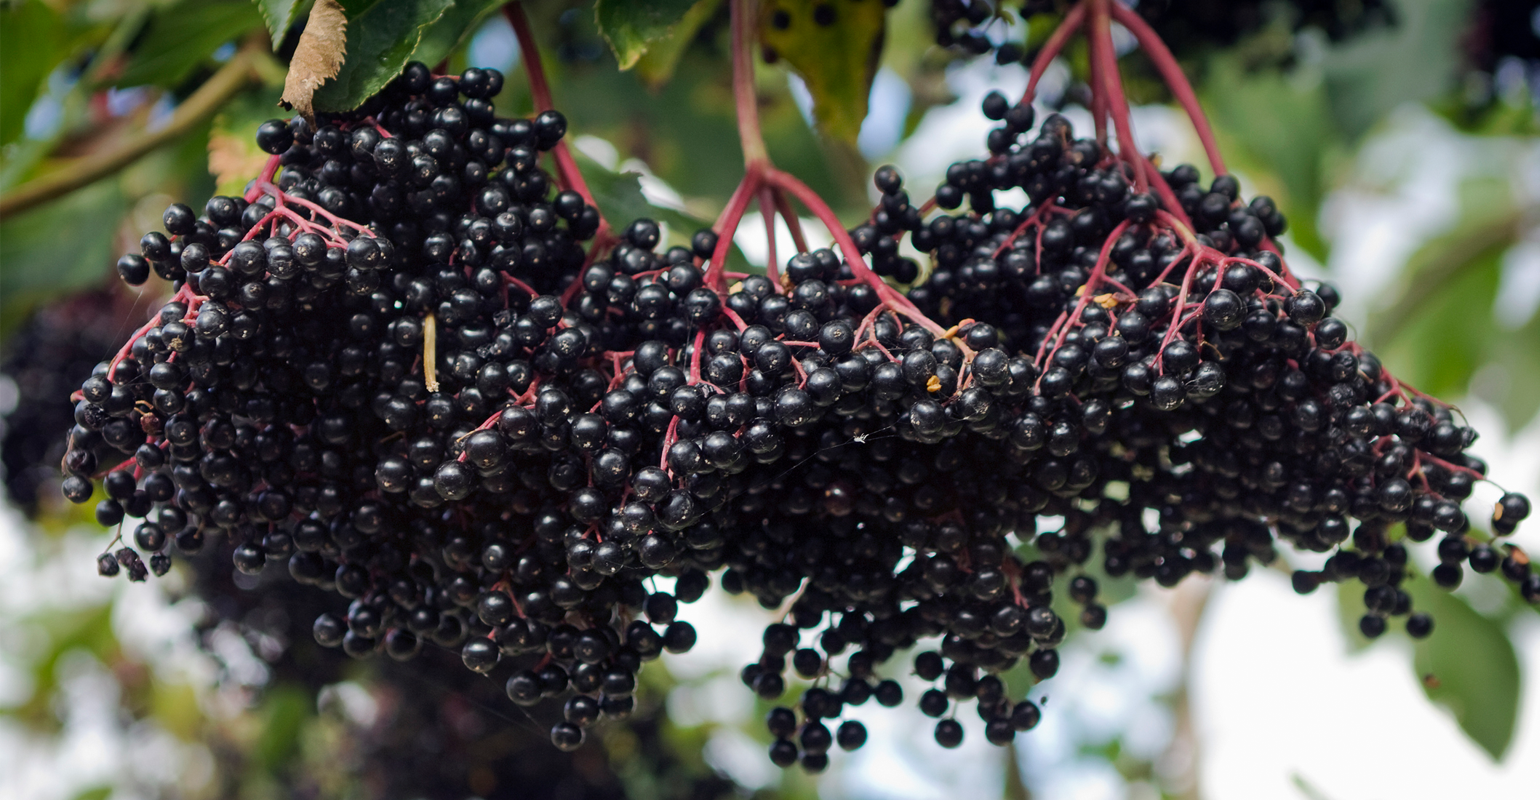 Should retailers recommend elderberry for coronavirus?